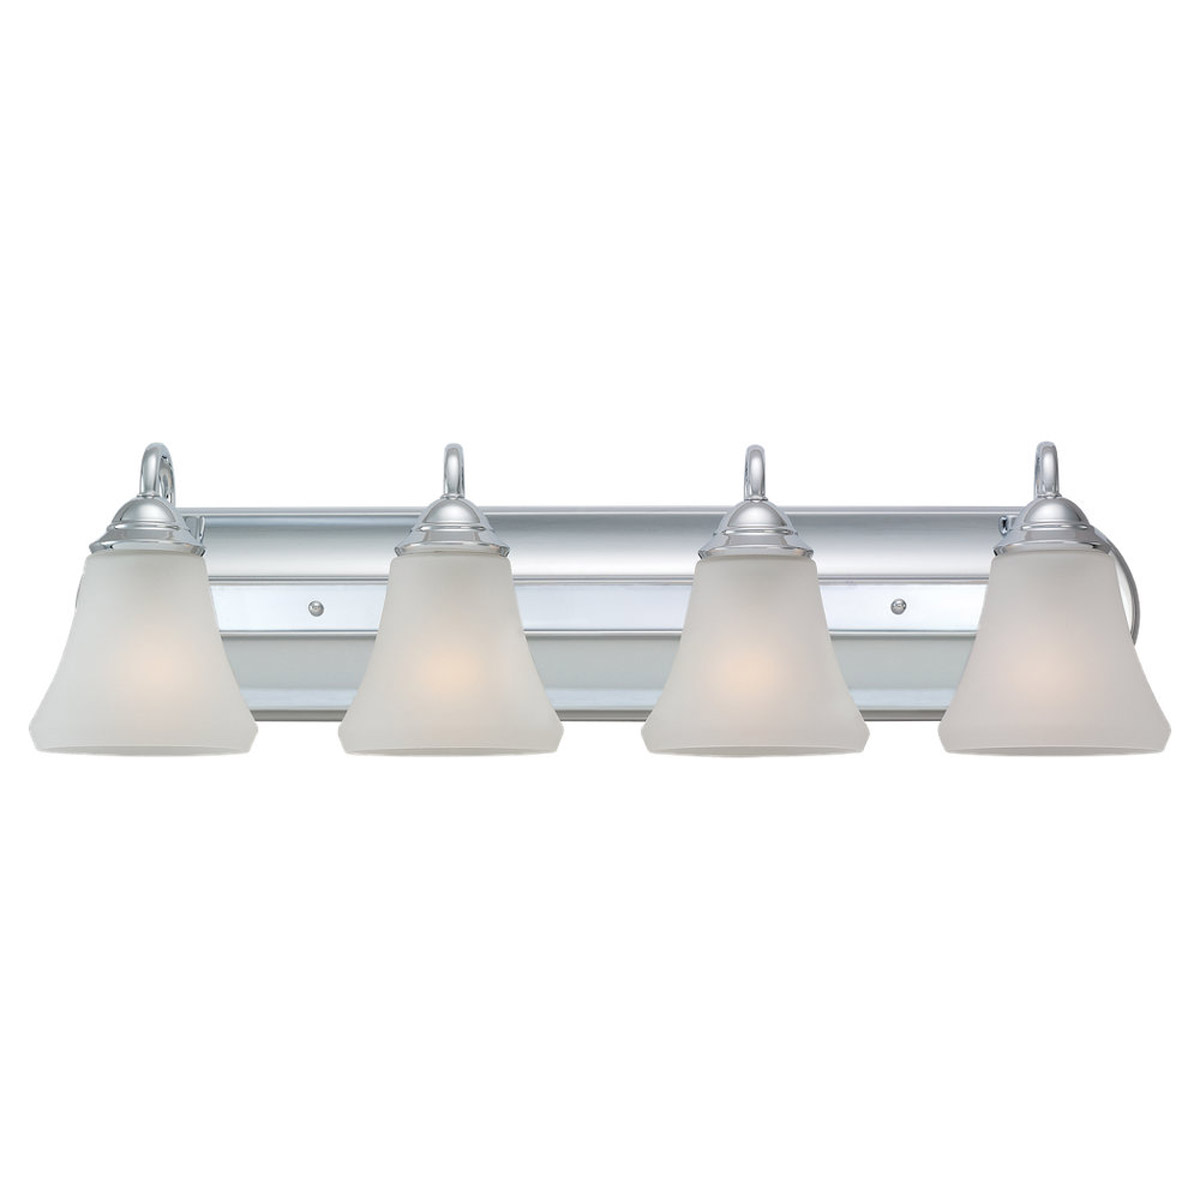 Sea Gull Lighting Fiona 4 Light Wall / Bath / Vanity in Chrome 44558-05